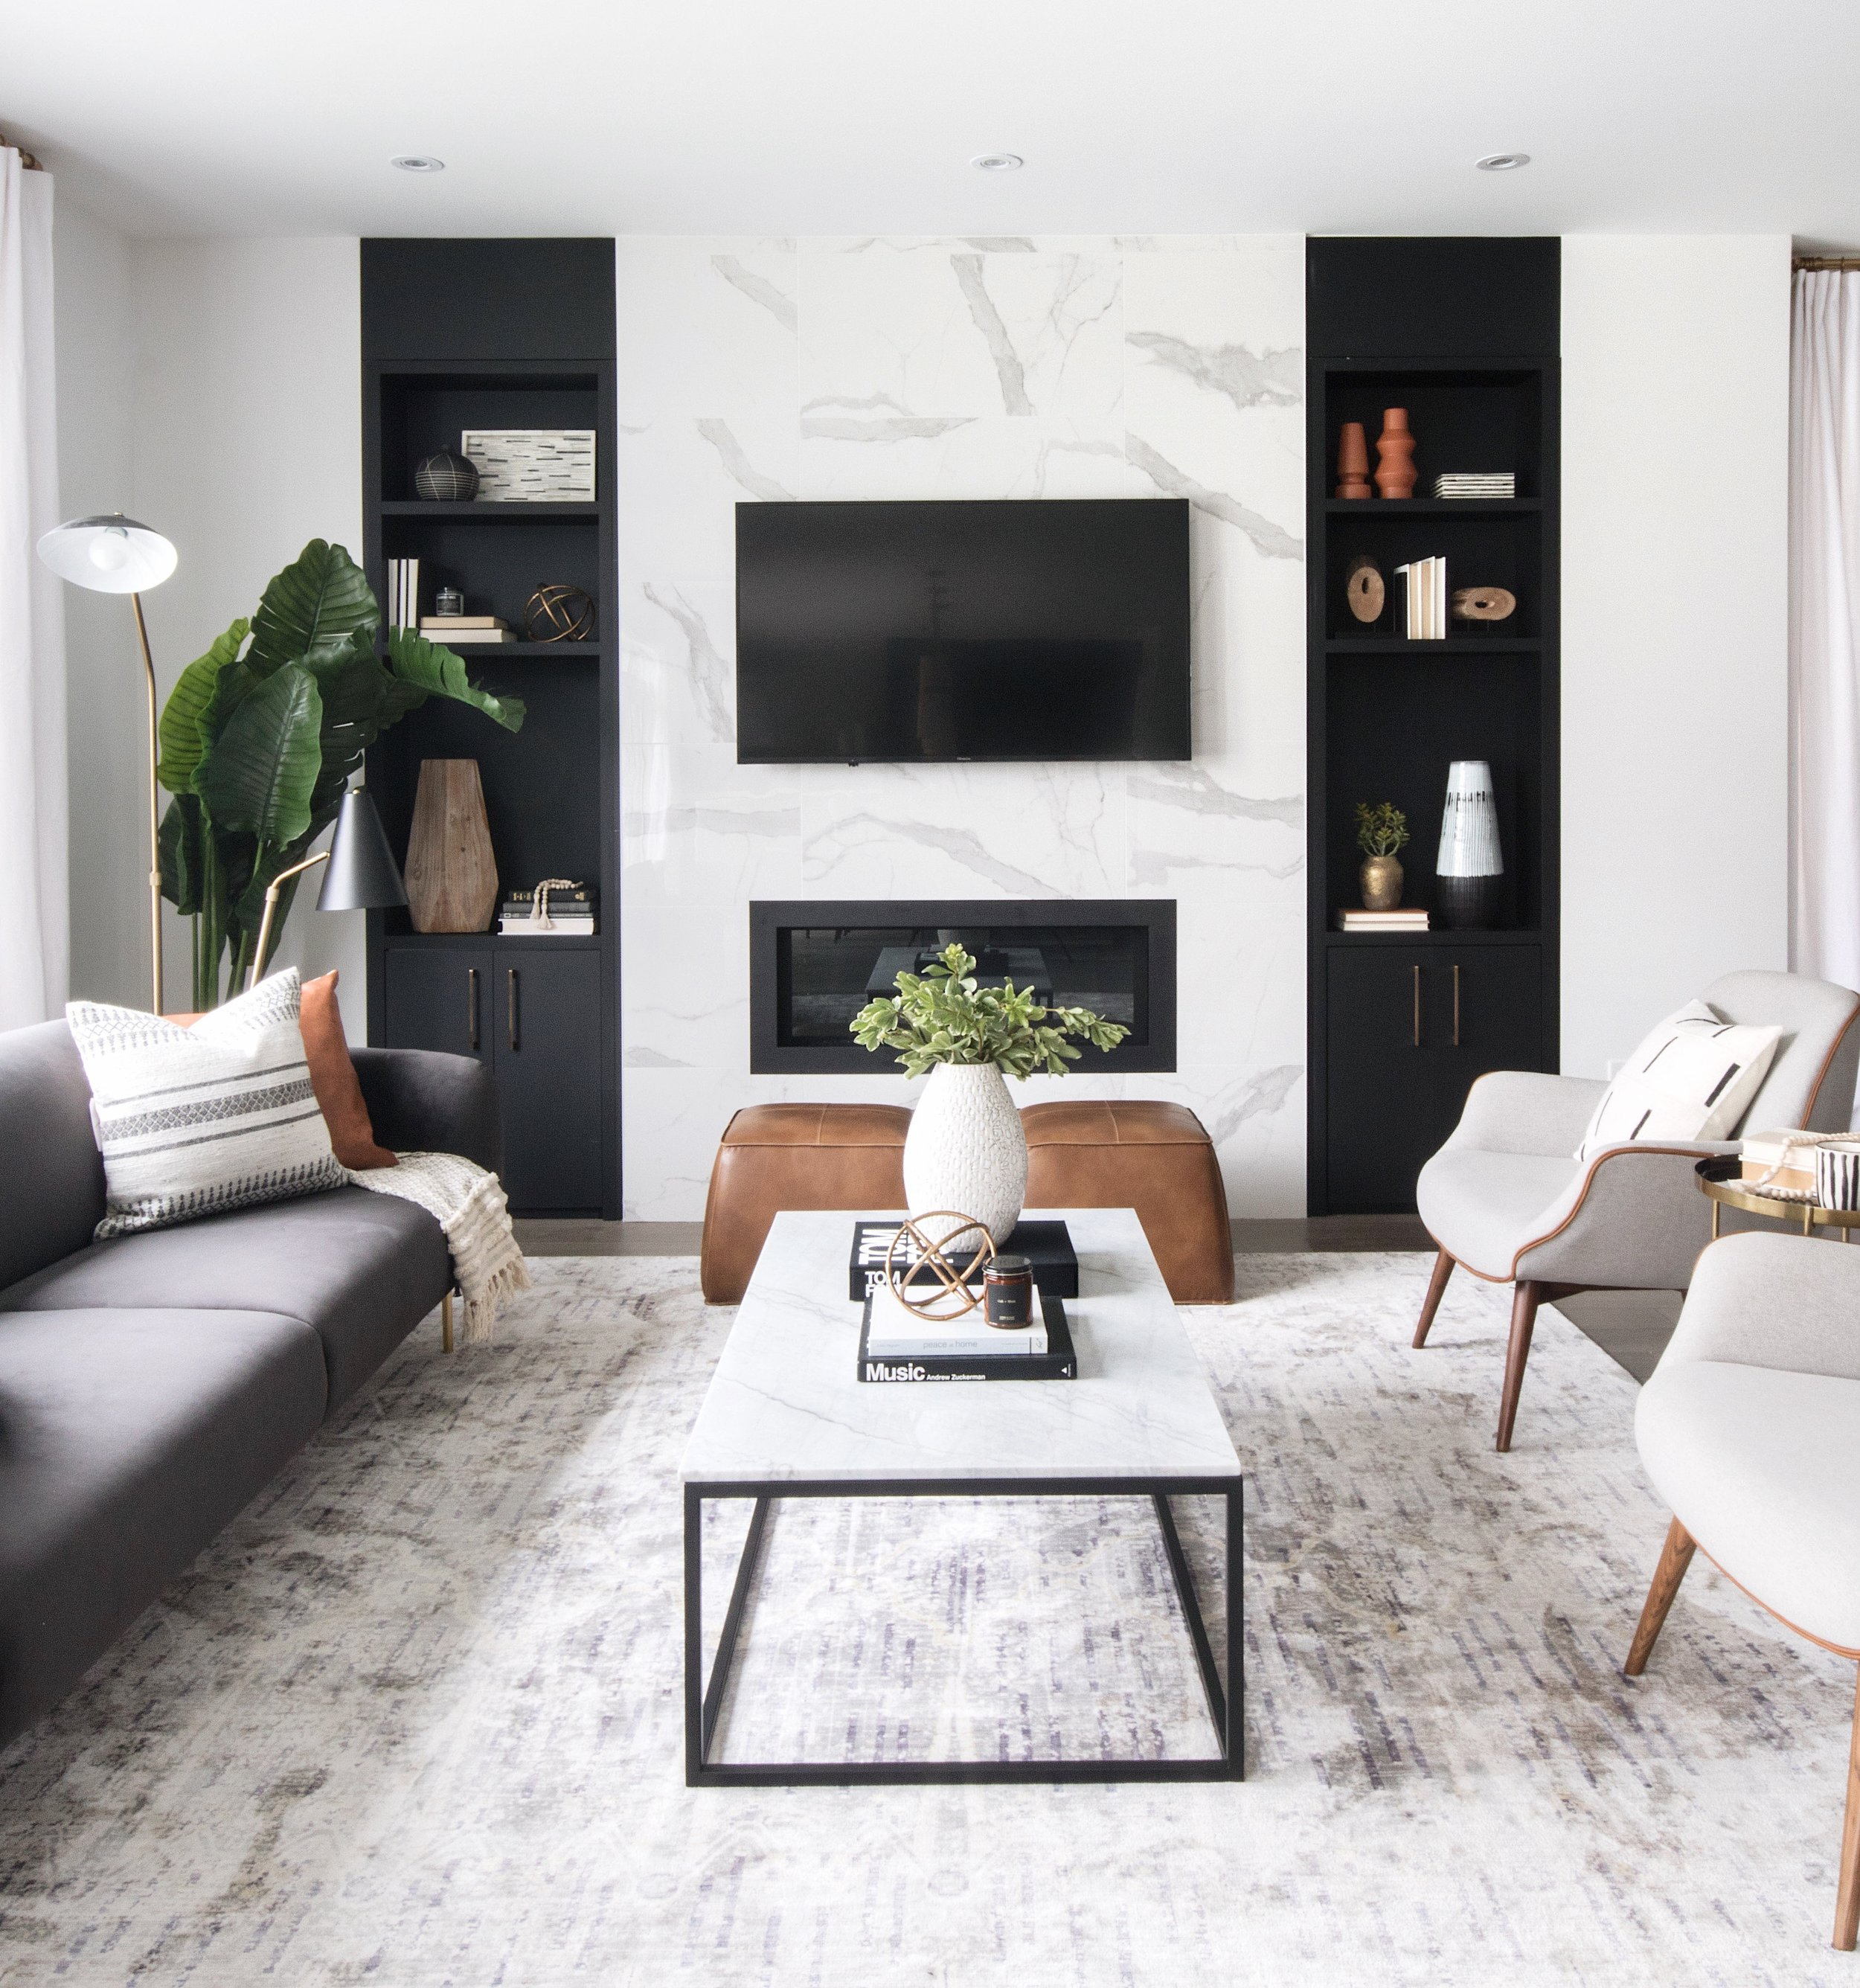 Leclair Decor's Cedarbreeze Project is both modern and cozy. The Ottawa based interior design firm created a home that feels sleek and cool, but still approachable.